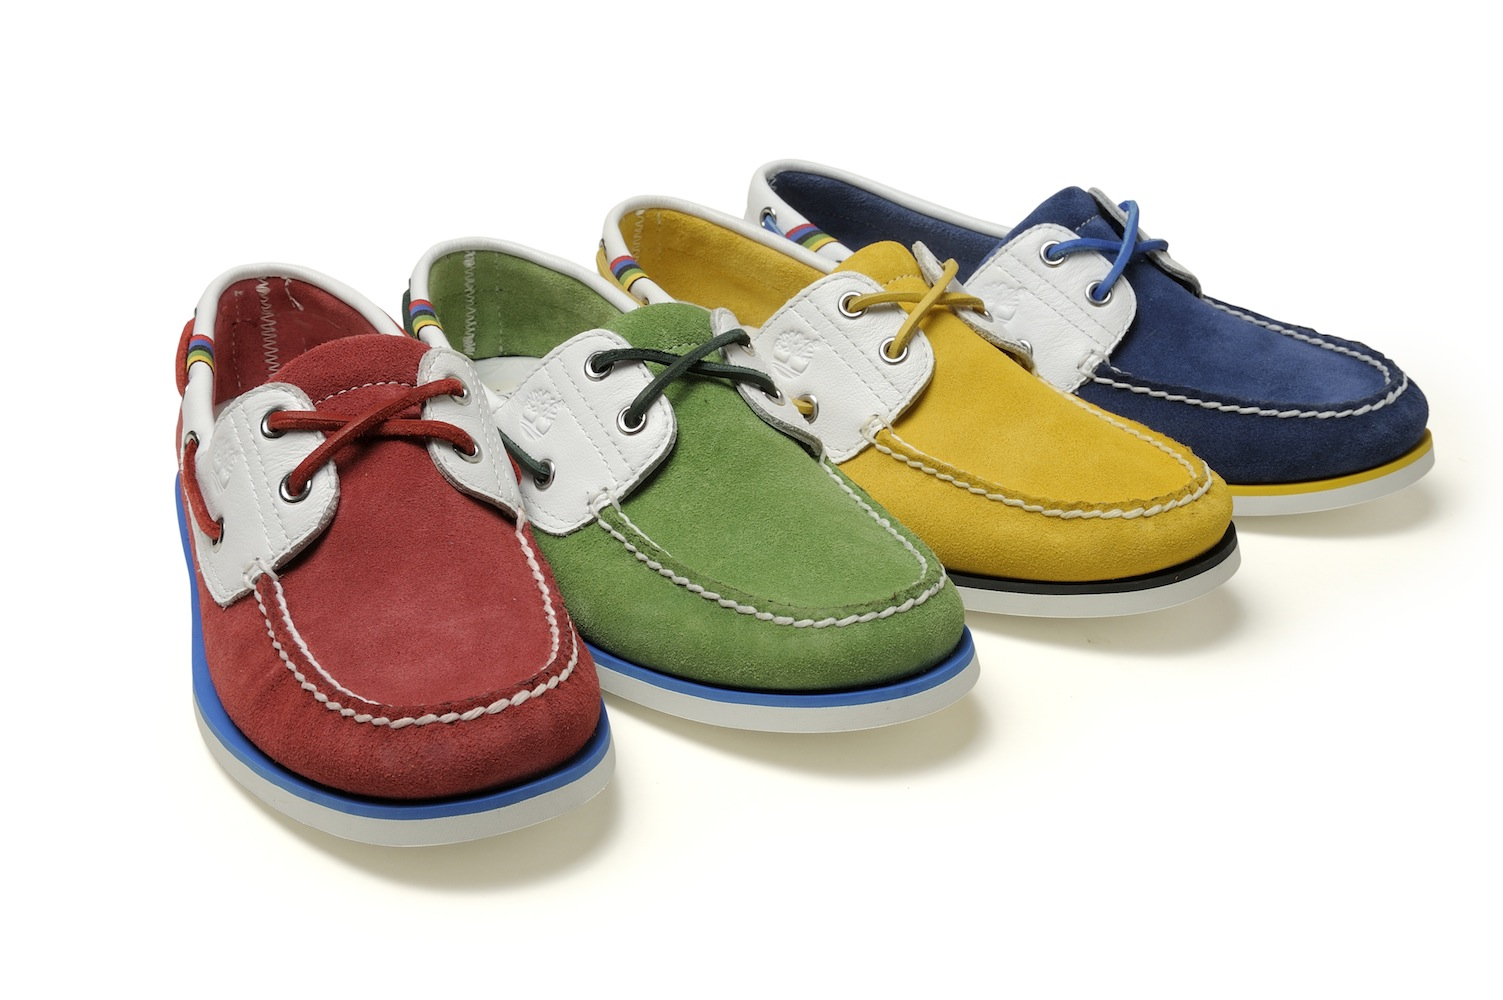 The Timberland Spring Summer 2012 Boat Shoe Collection